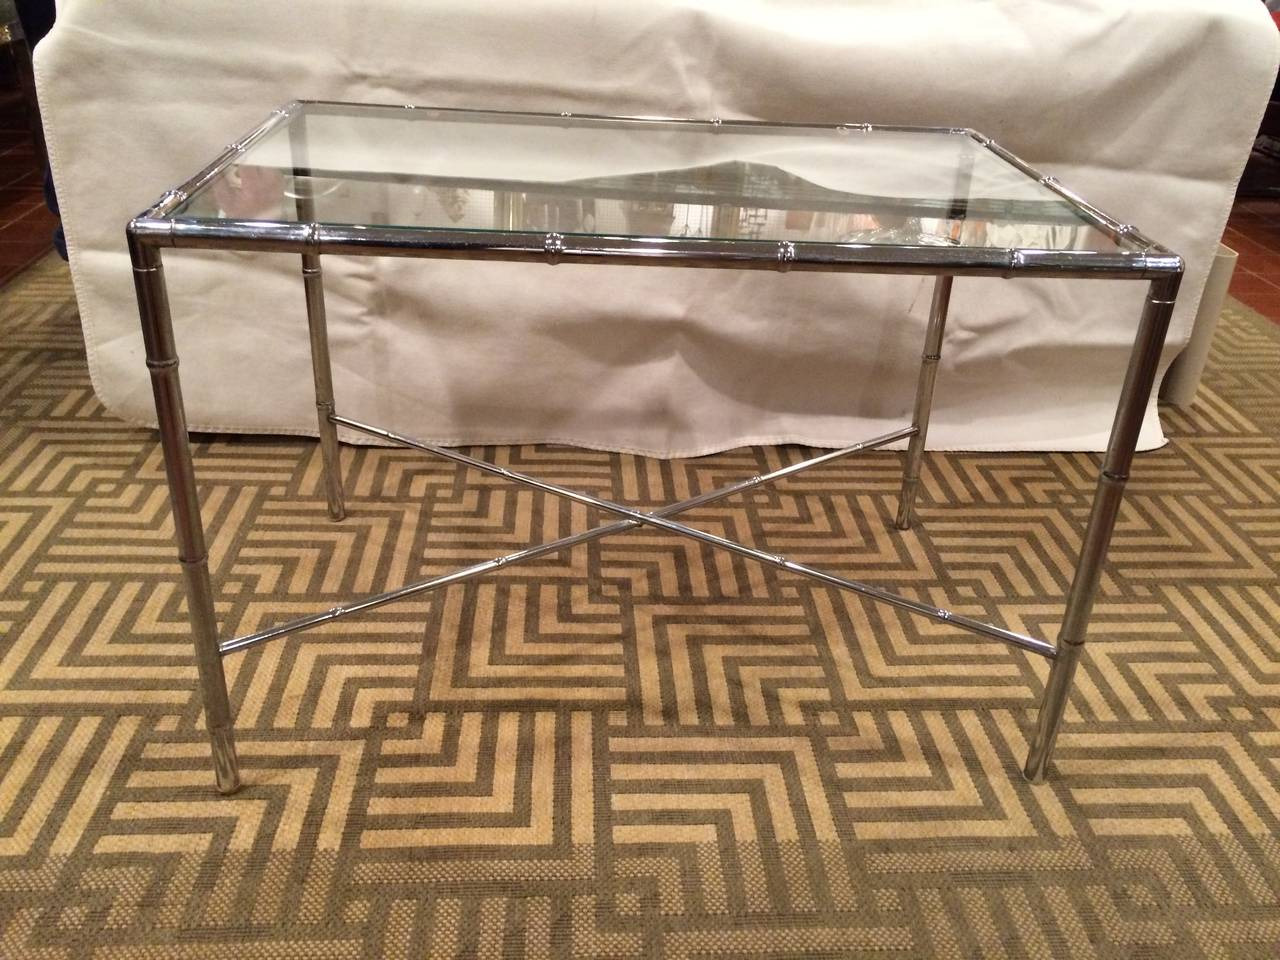 Milo Baughman Style Faux bamboo chrome and glass table with Classic X-base. This would fit in with any Hollywood Regency or Mid-Century Modern decor. Minimal clean lines make up this design.